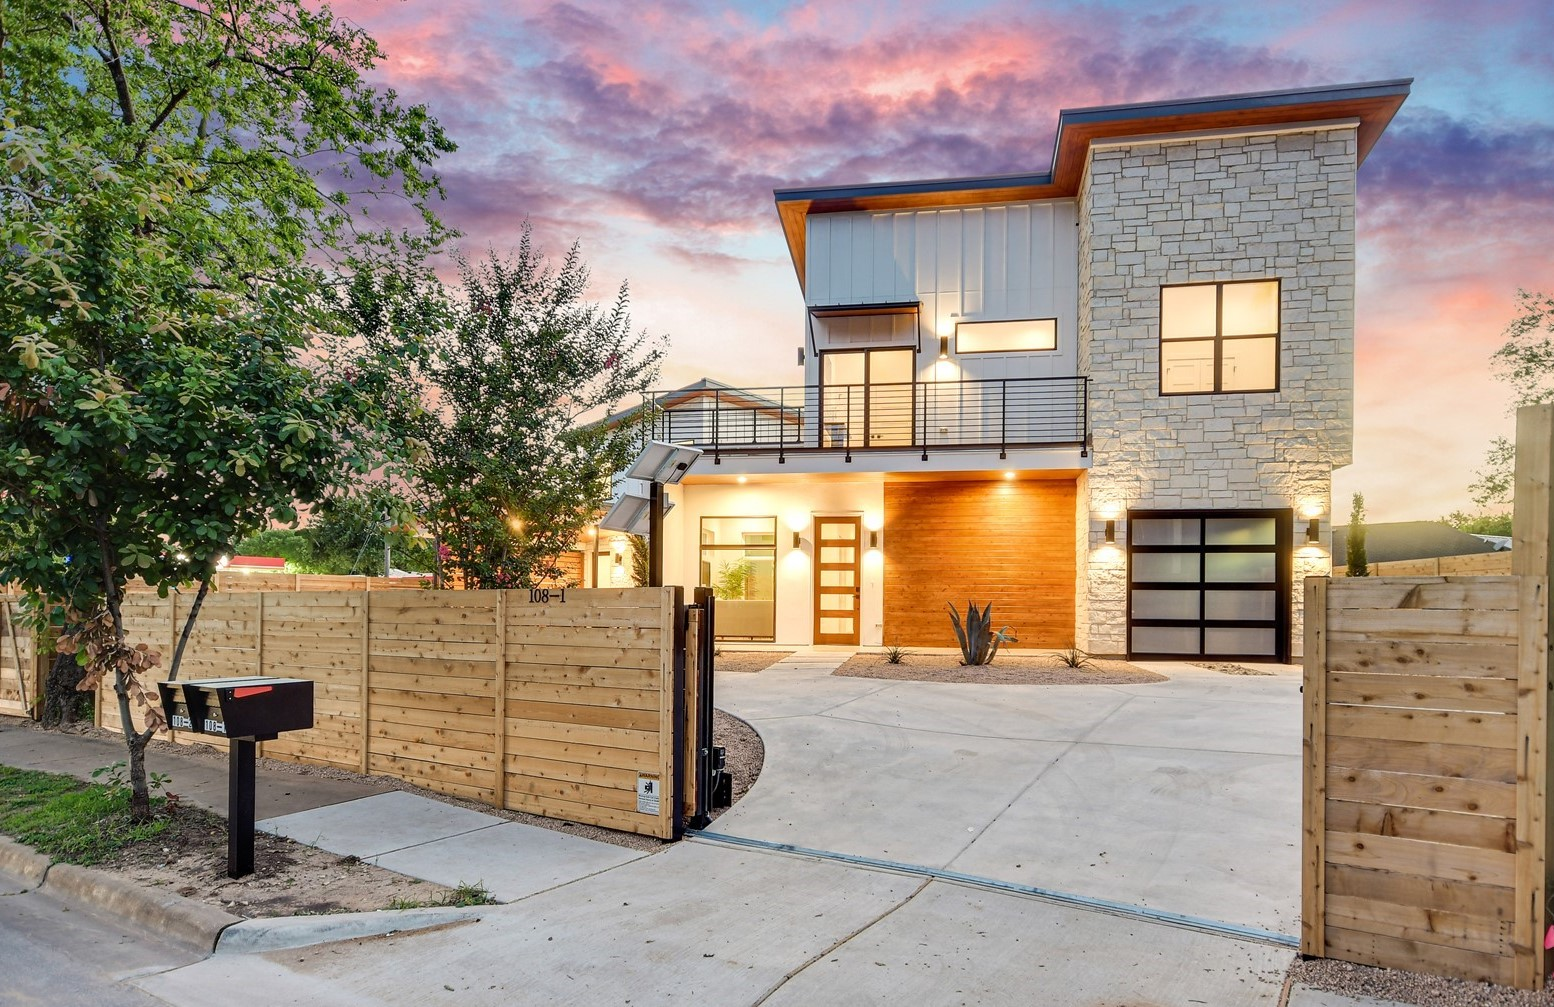 The 108 Tillery Street, Building 1 is <b>SOLD</b>. It is an exciting new modern home with 4 Bedrooms, 3.5 Bathrooms, and a 1-Car Garage.